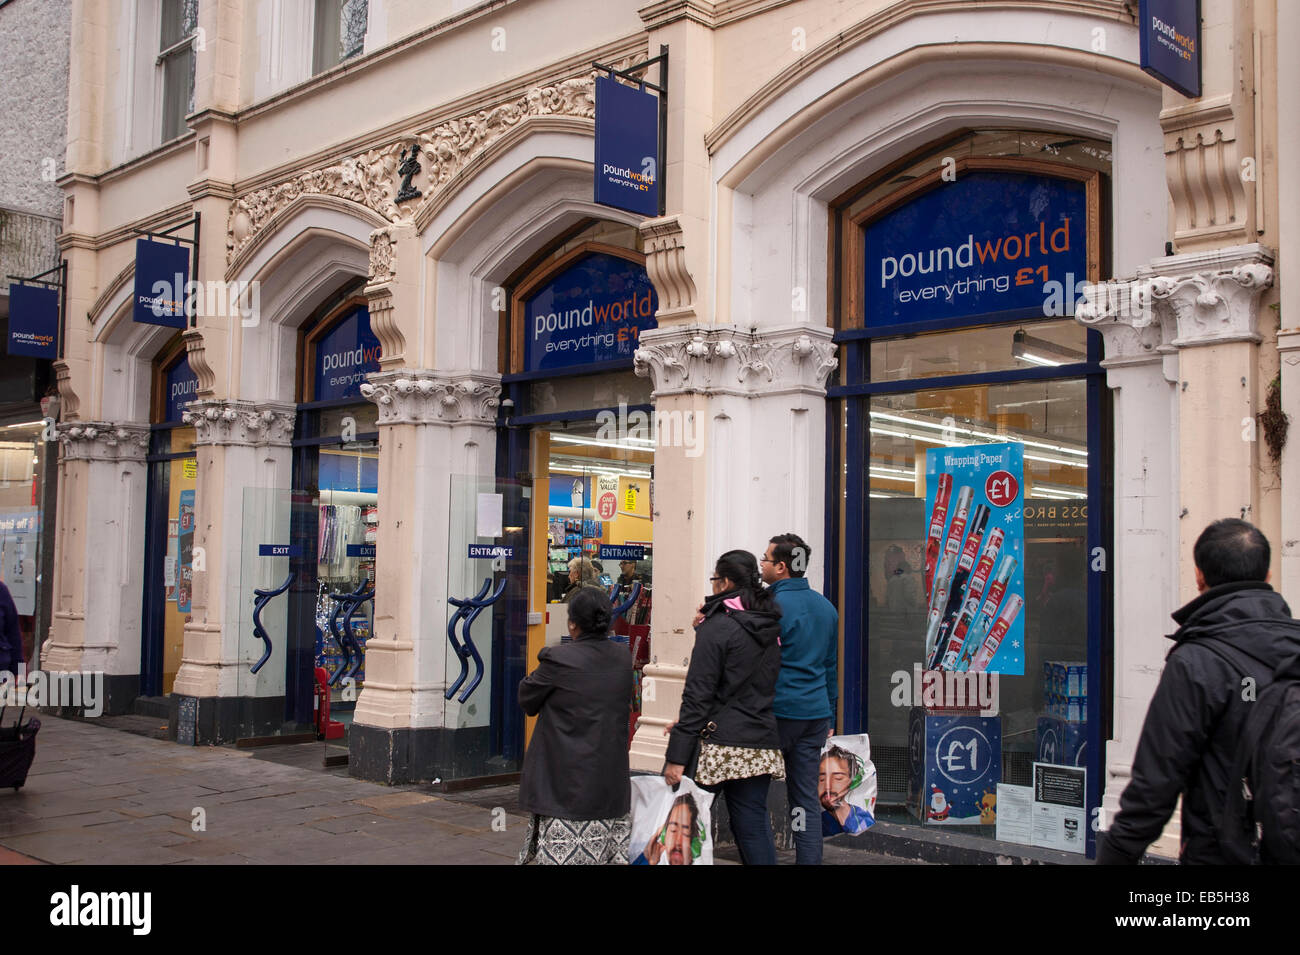 Watford, Hertfordshire, UK. 26th November, 2014.  Discount stores, selling products for £1 or less, help to - Stock Image